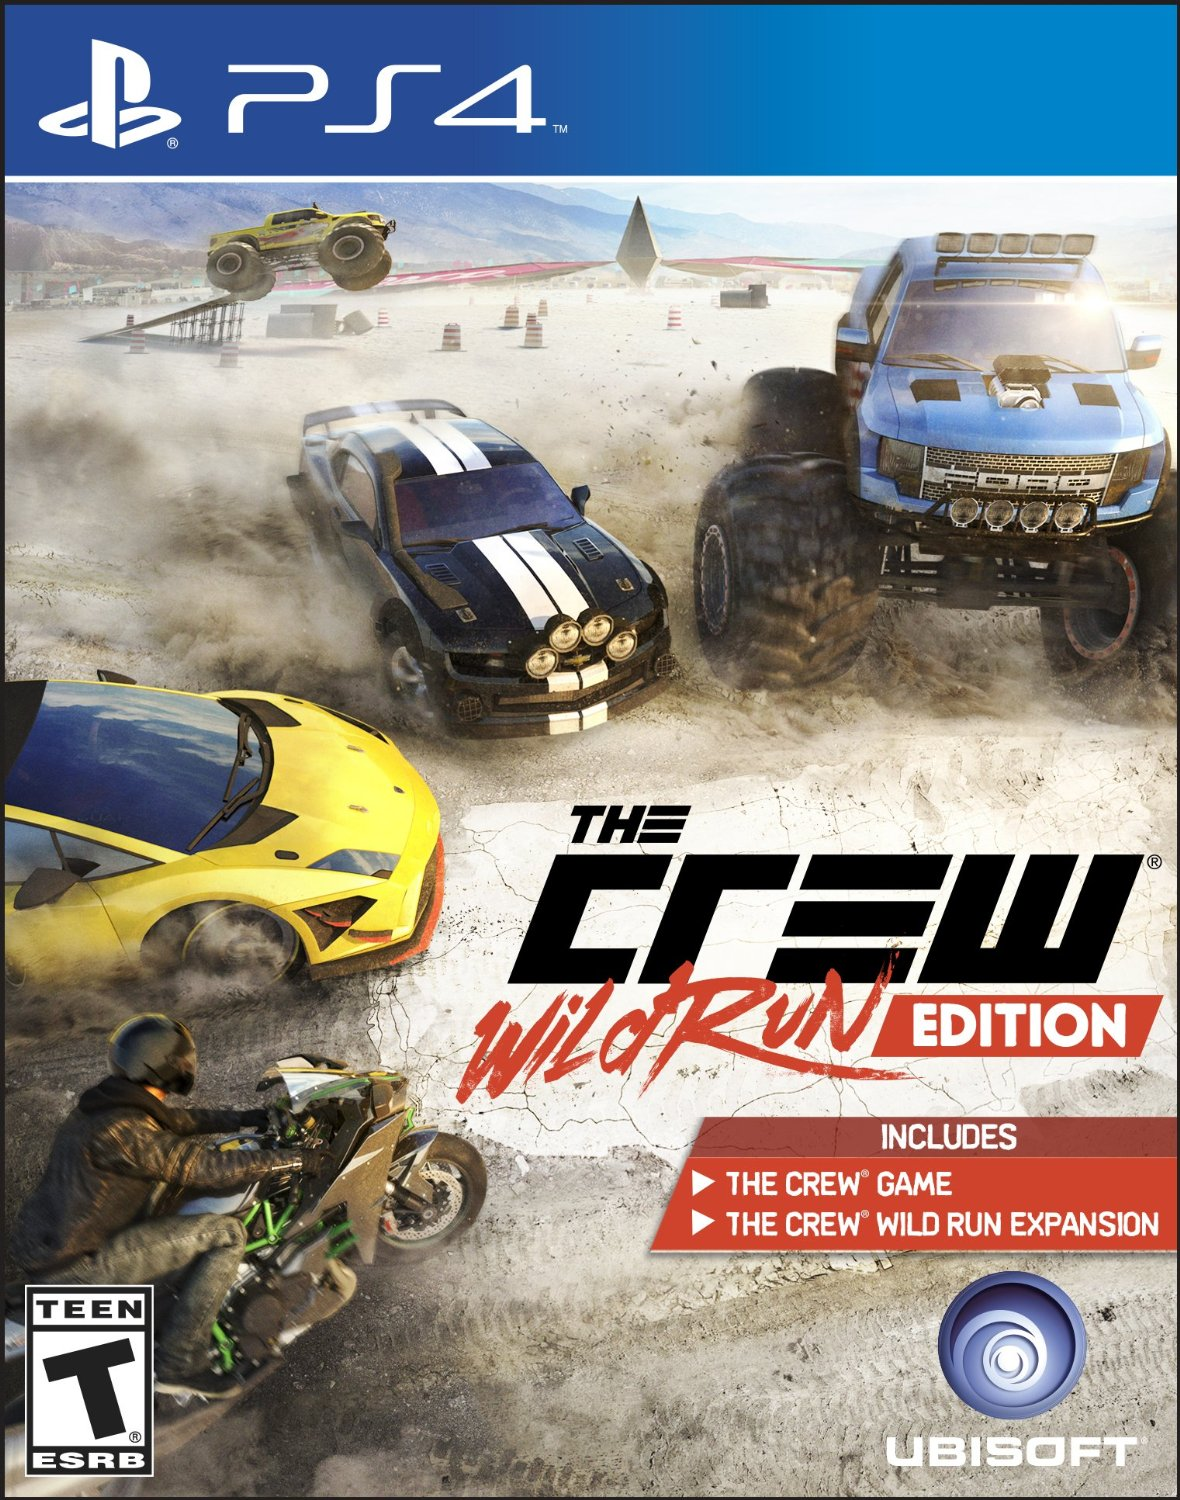 Crew Wild Run Edition, The